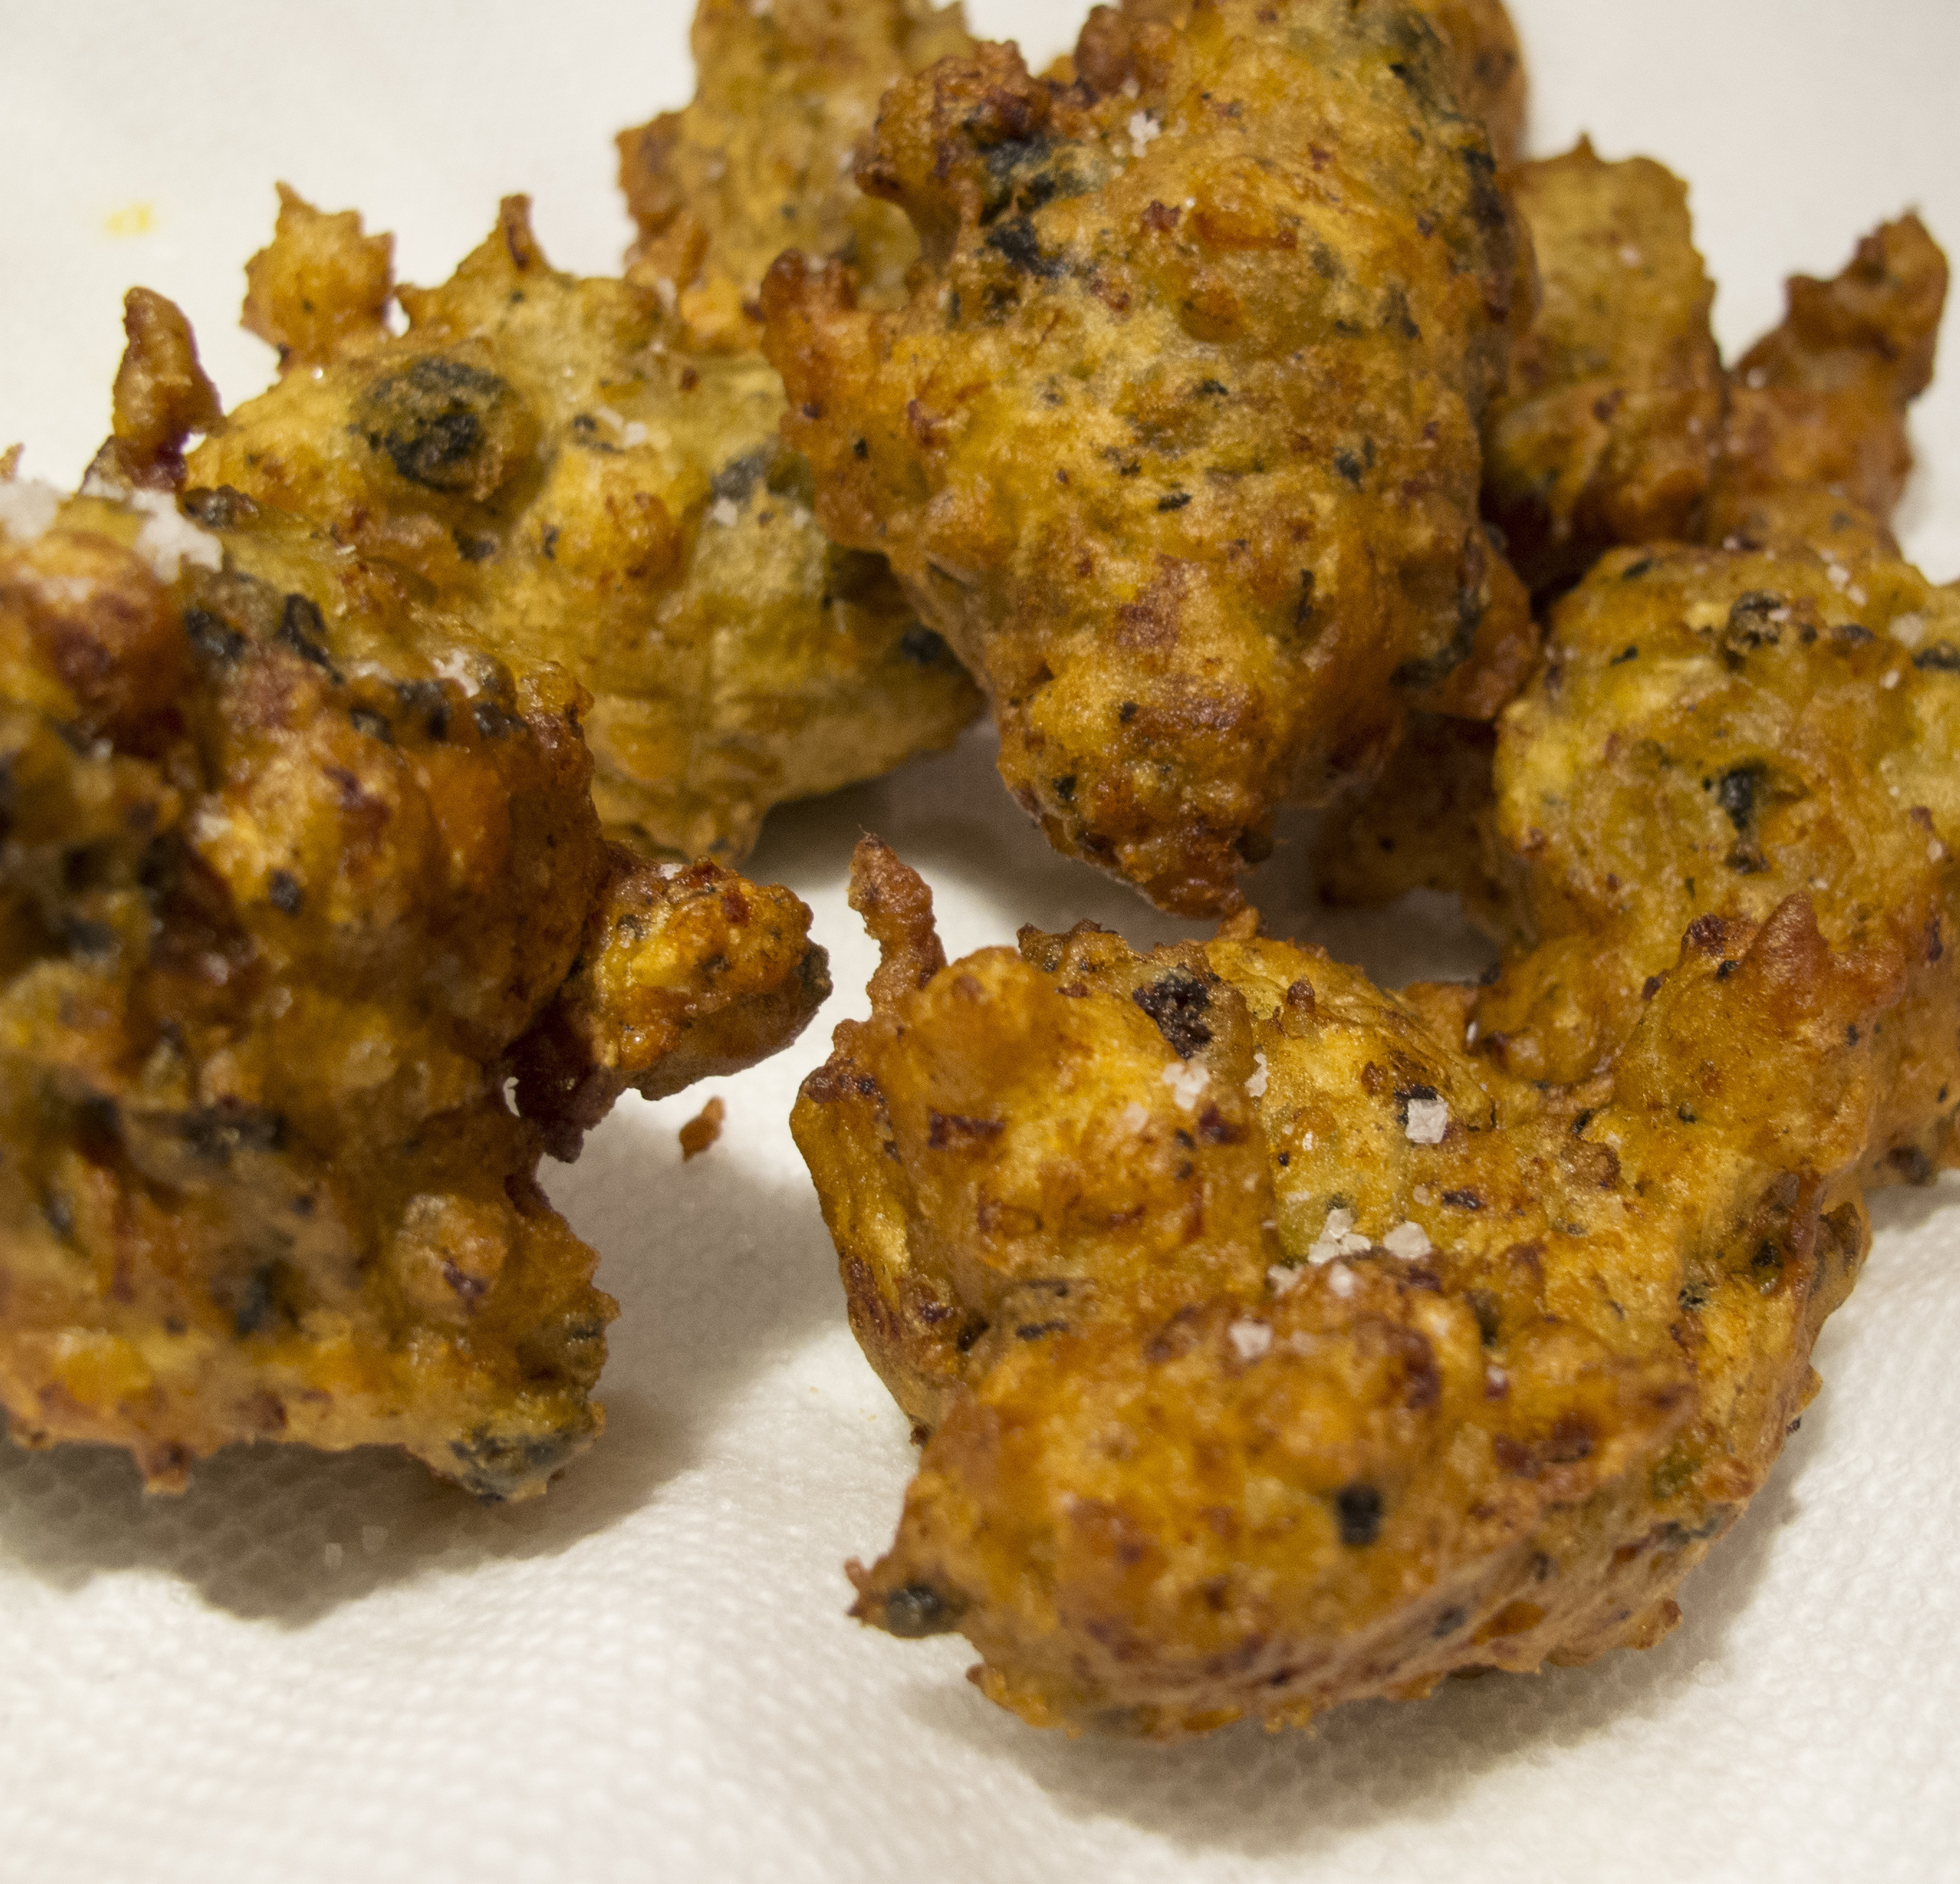 AWESOME MUSSEL FRITTERS